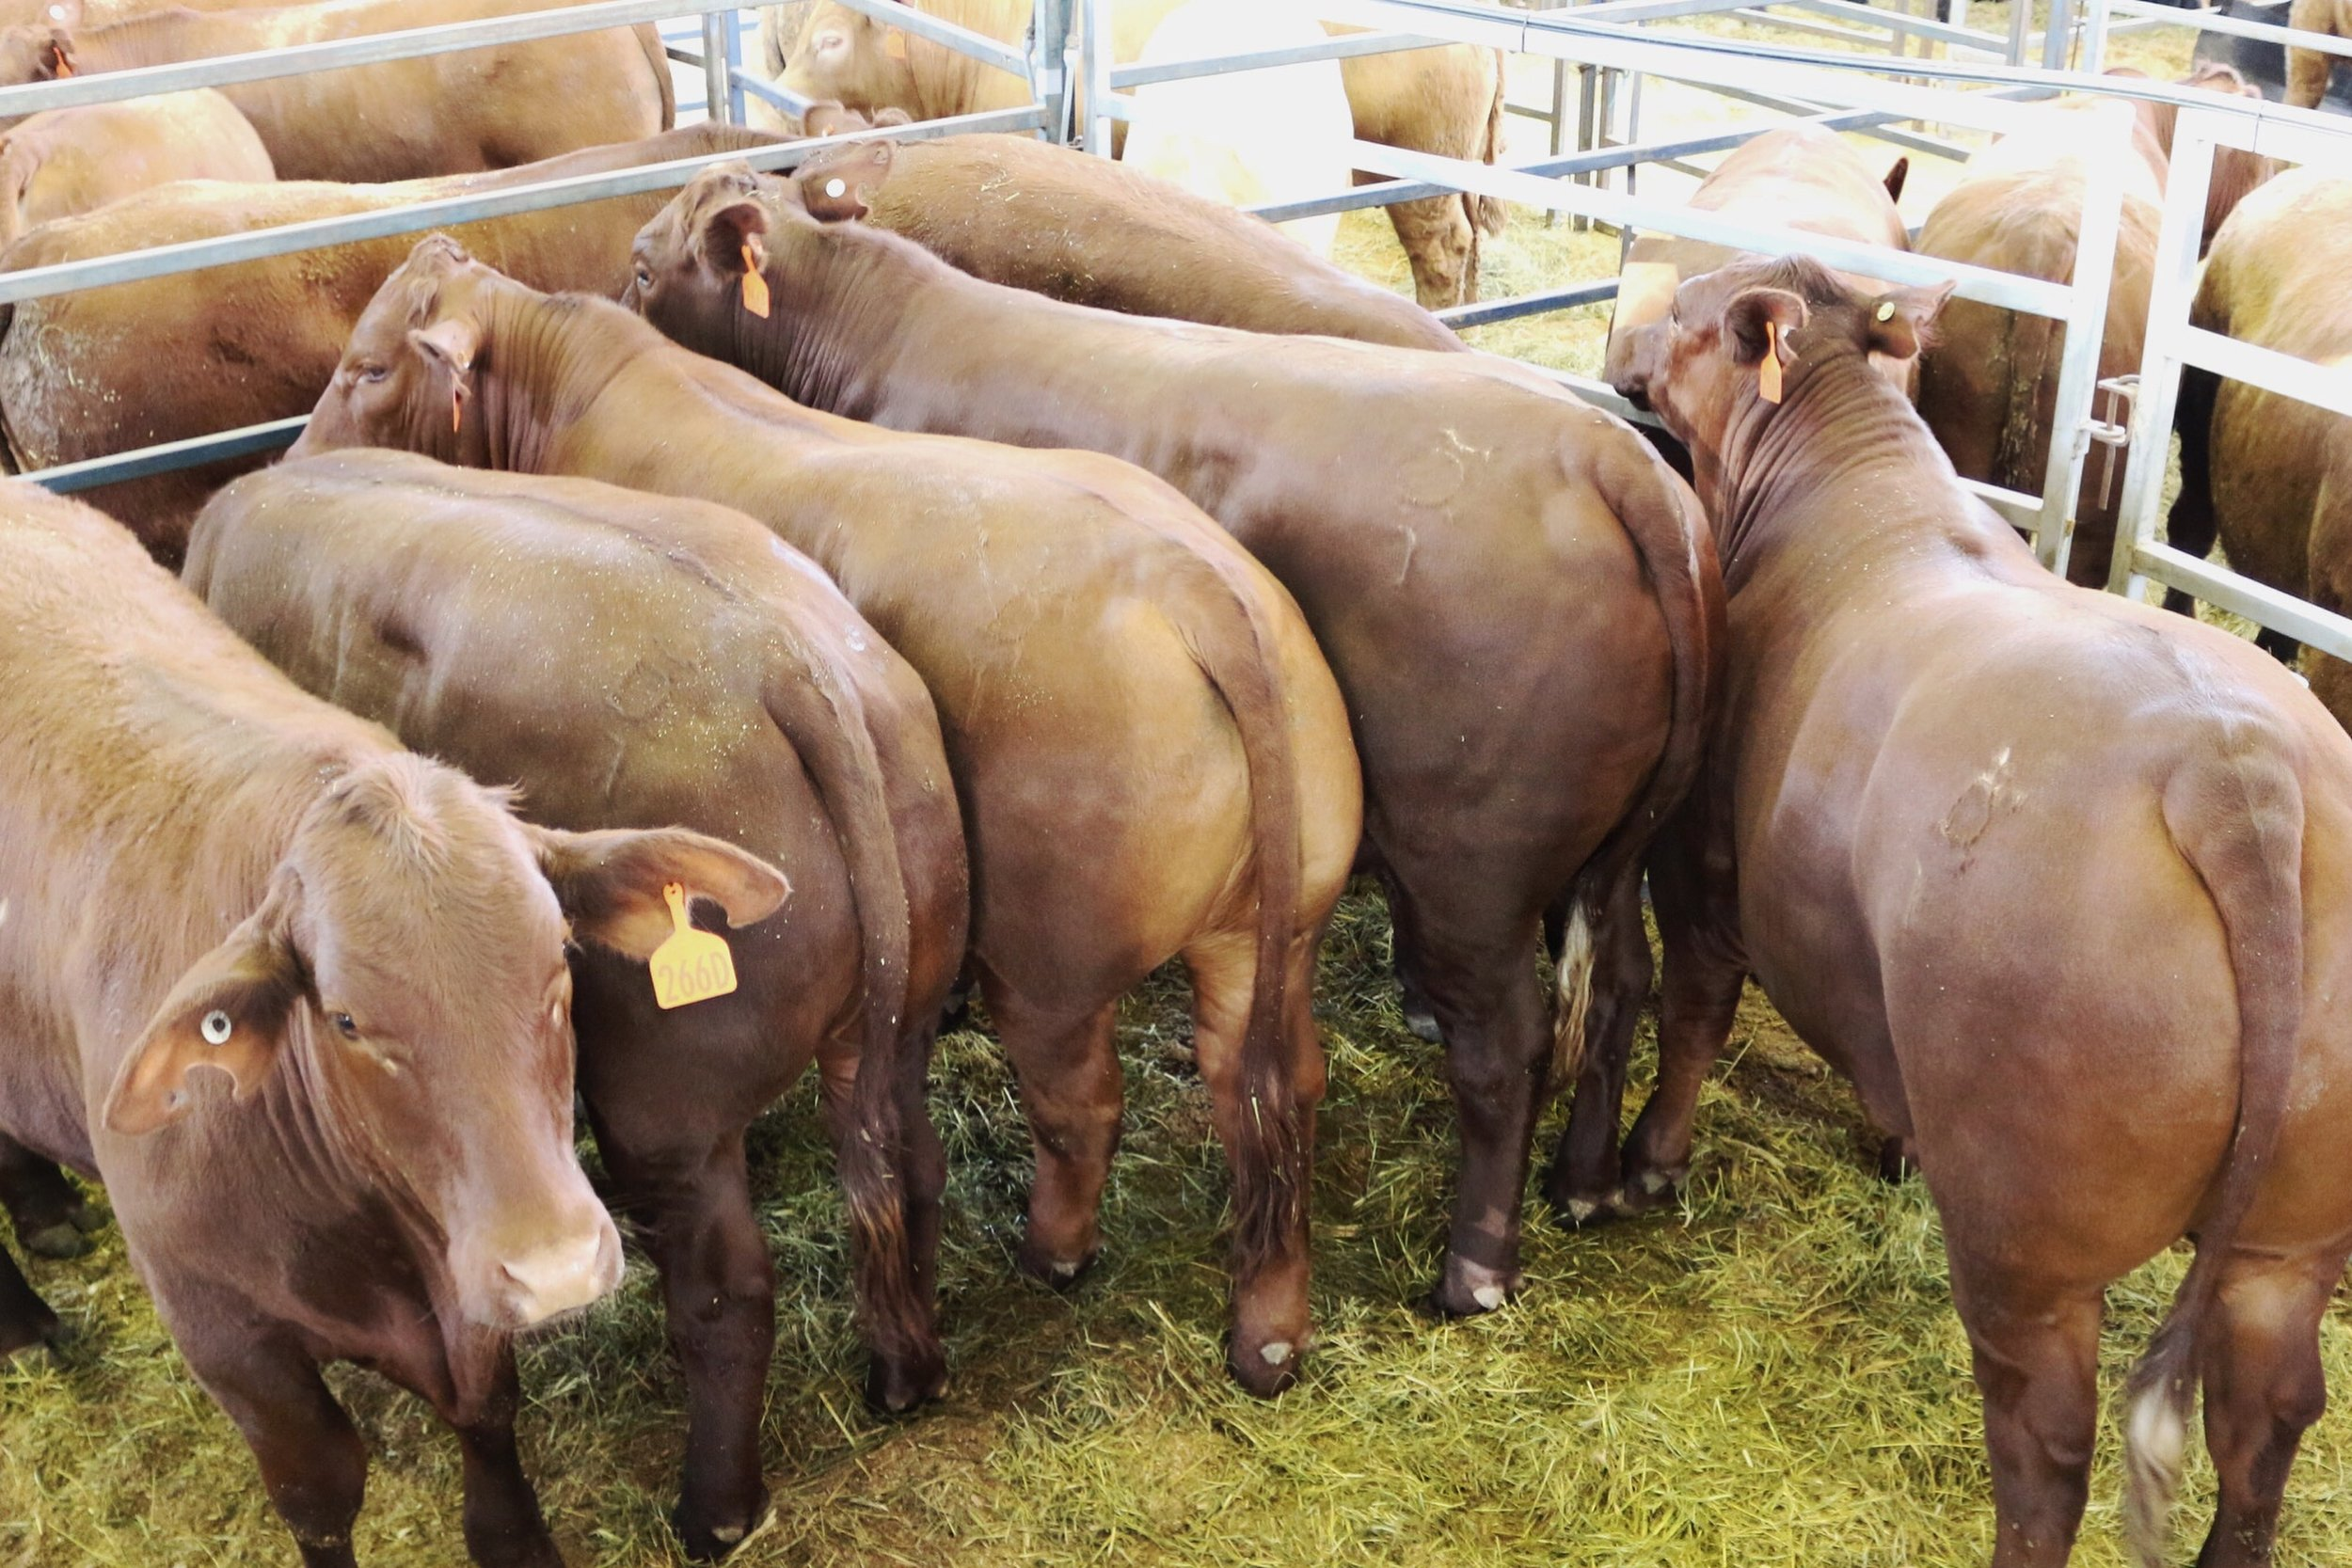 RNA Competition Results for Prime Beef presented by Queensland Country Life    1st High Point Achiever Award for Stud, Hoof and Hook    1st and 2nd Pen of Six Pasture Fed Steers Jap Ox Carcase Class    1st Pen of Six Grain or Pasture Fed Steers 400-520 kg    2nd Pen of Six Grain or Pasture Fed Steers 521-600 kg    Champion Single Steer